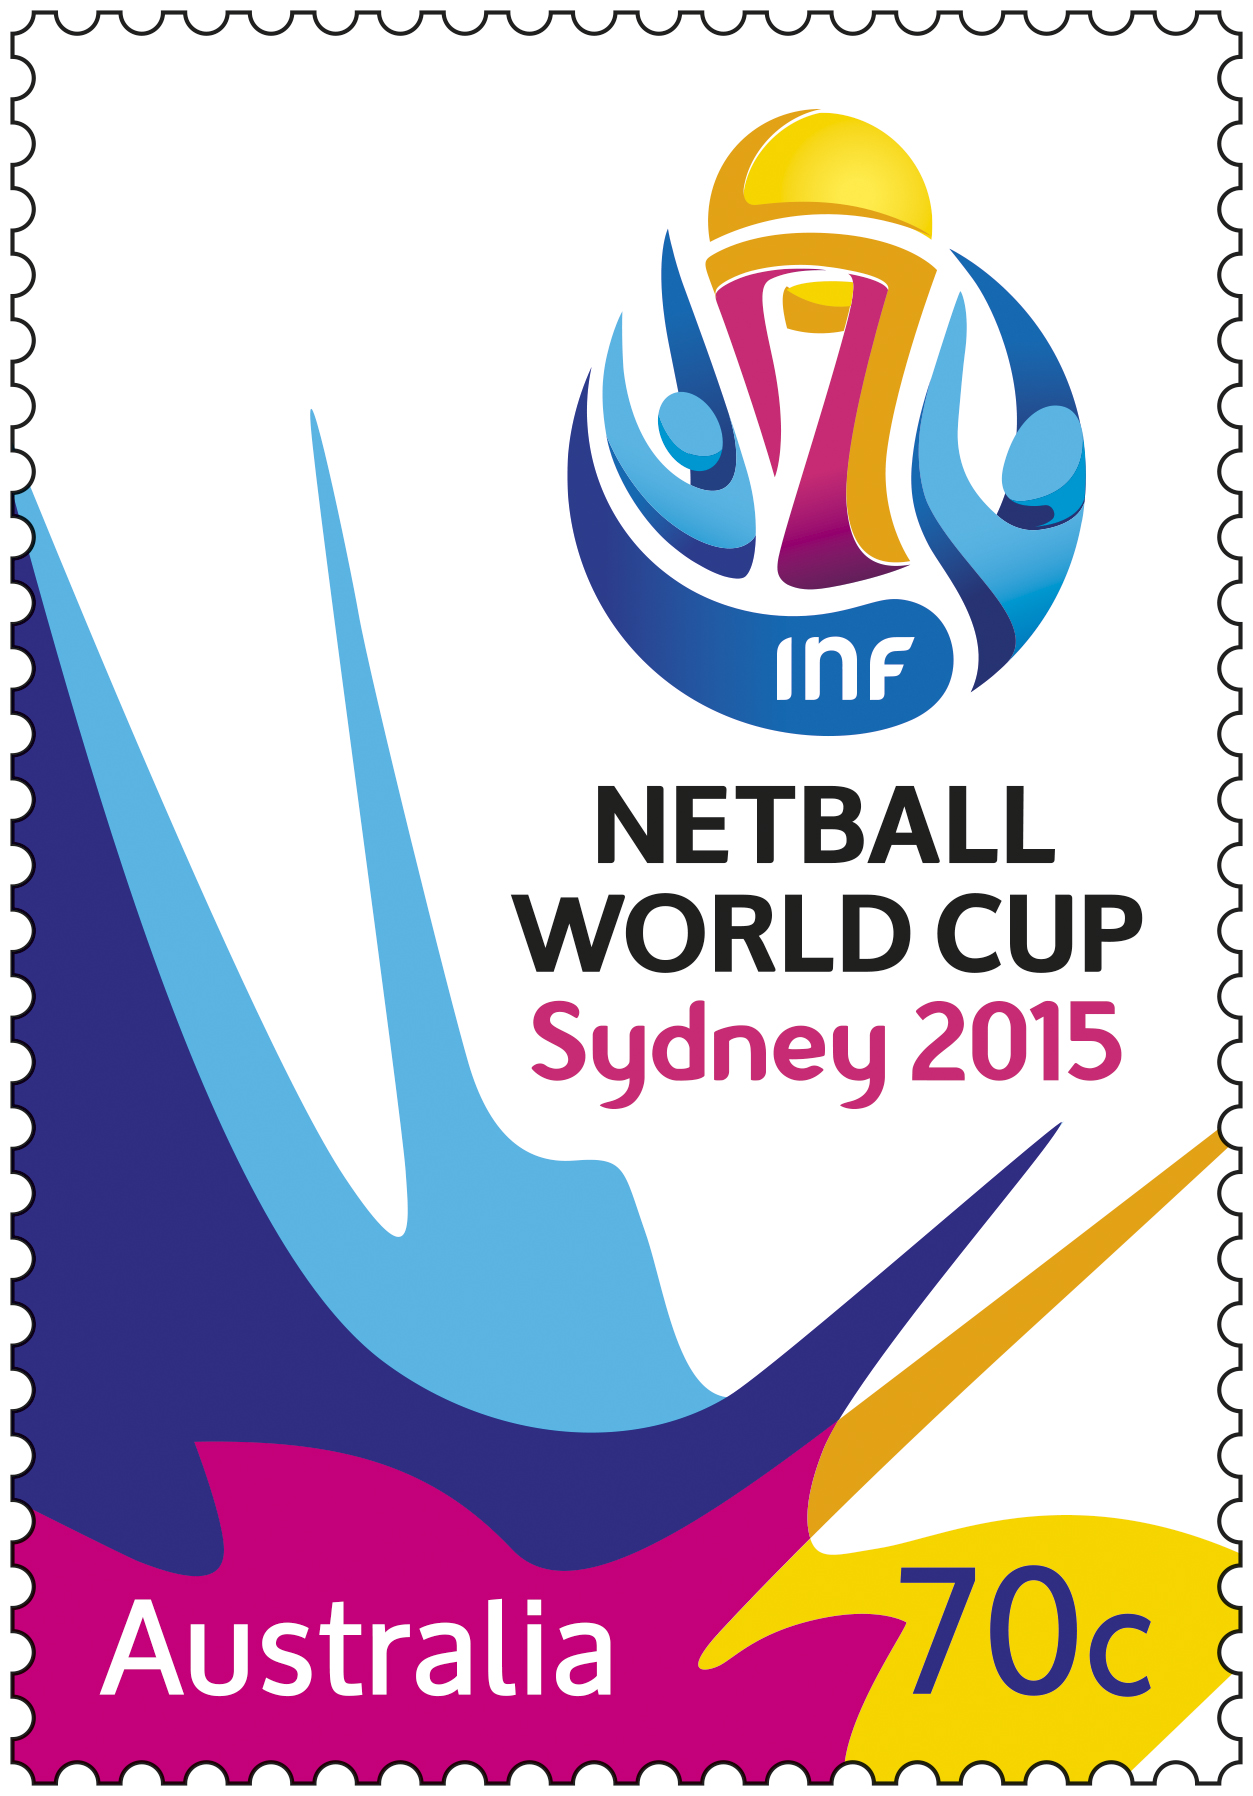 70c Netball World Cup Sydney 2015 stamp